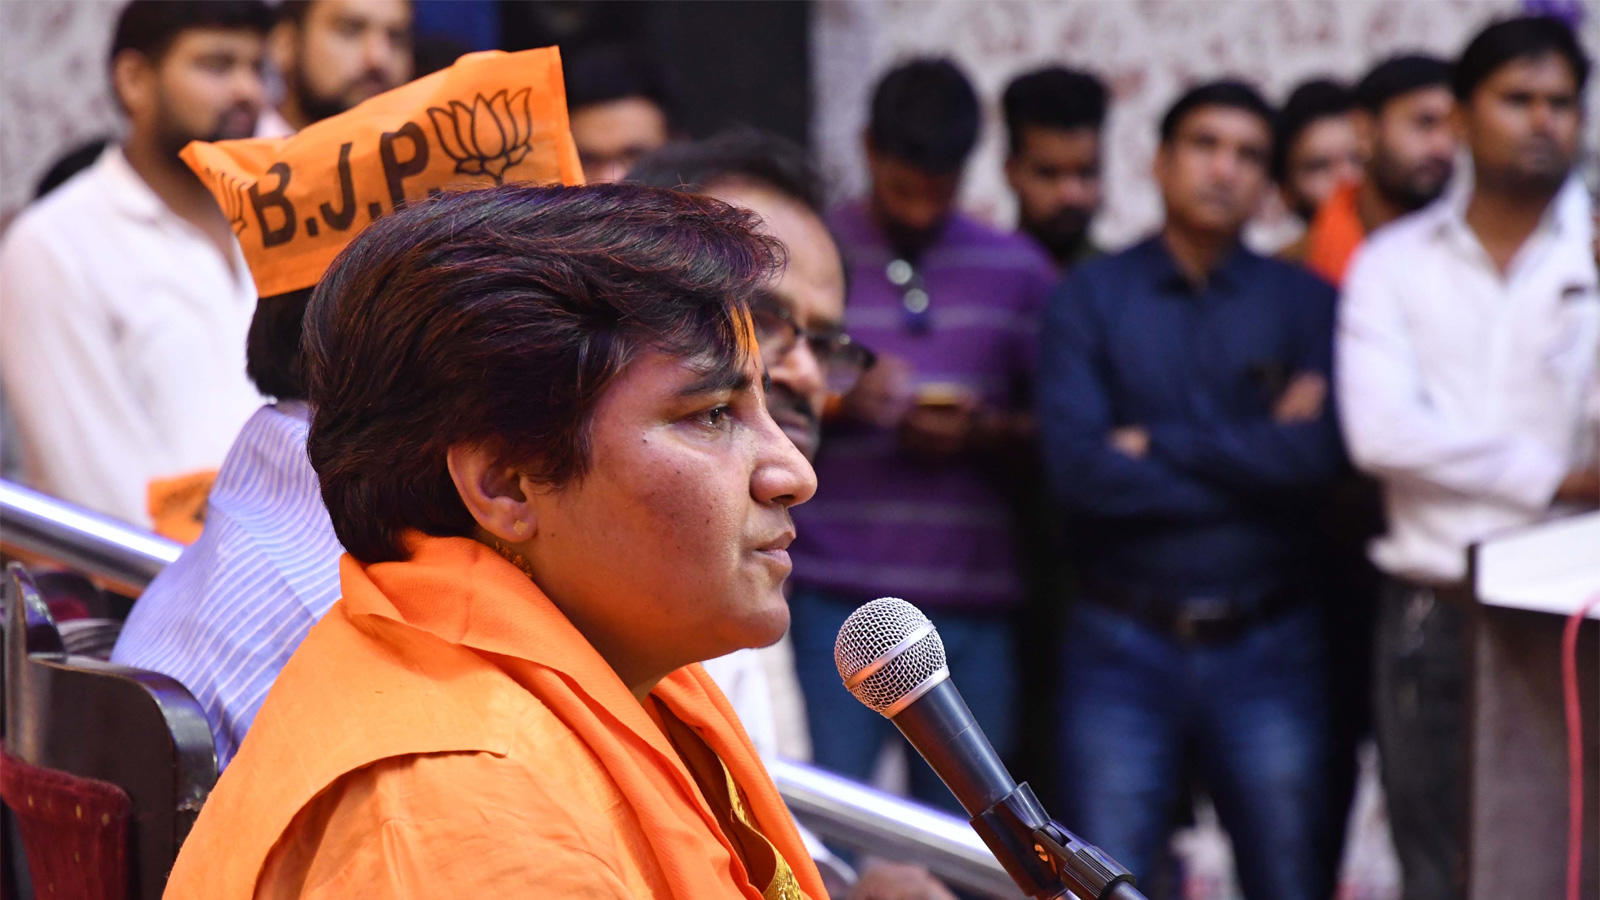 bjp-distances-itself-from-remarks-of-sadhvi-pragya-singh-thakur-on-hemant-karkare